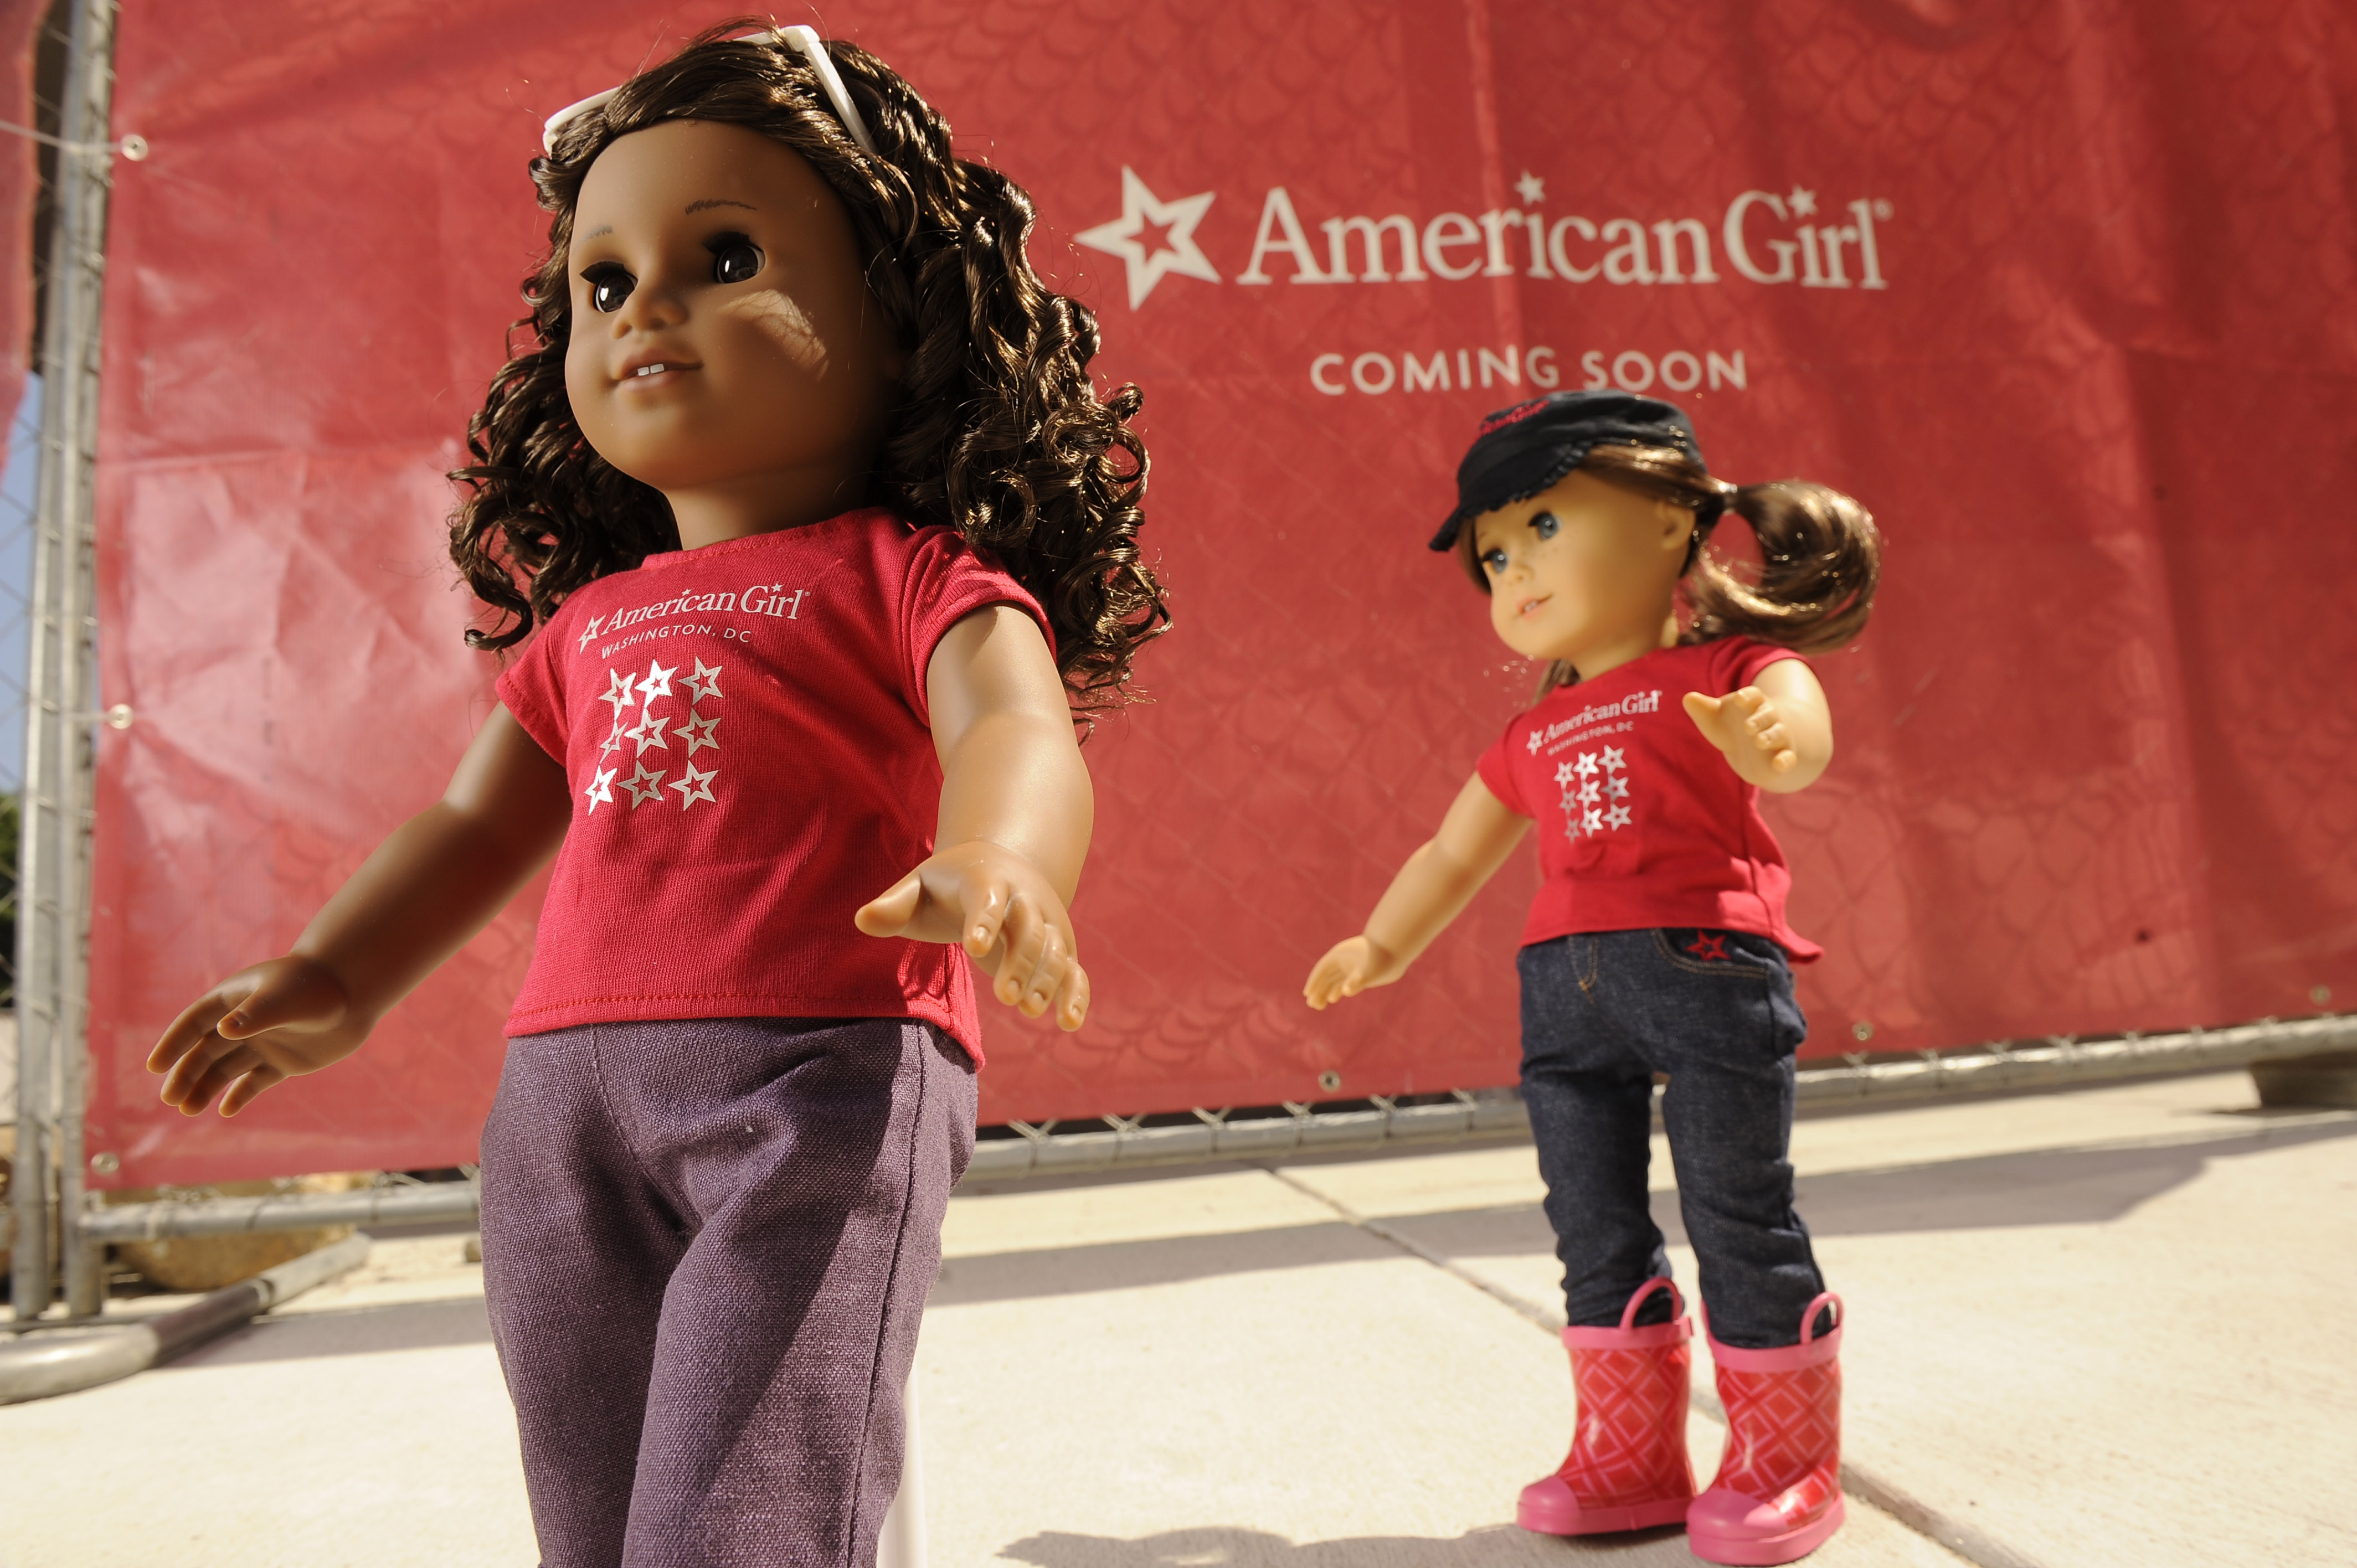 Outside the American Girl Doll store in Washington, D.C. store at Tysons Corner Center.